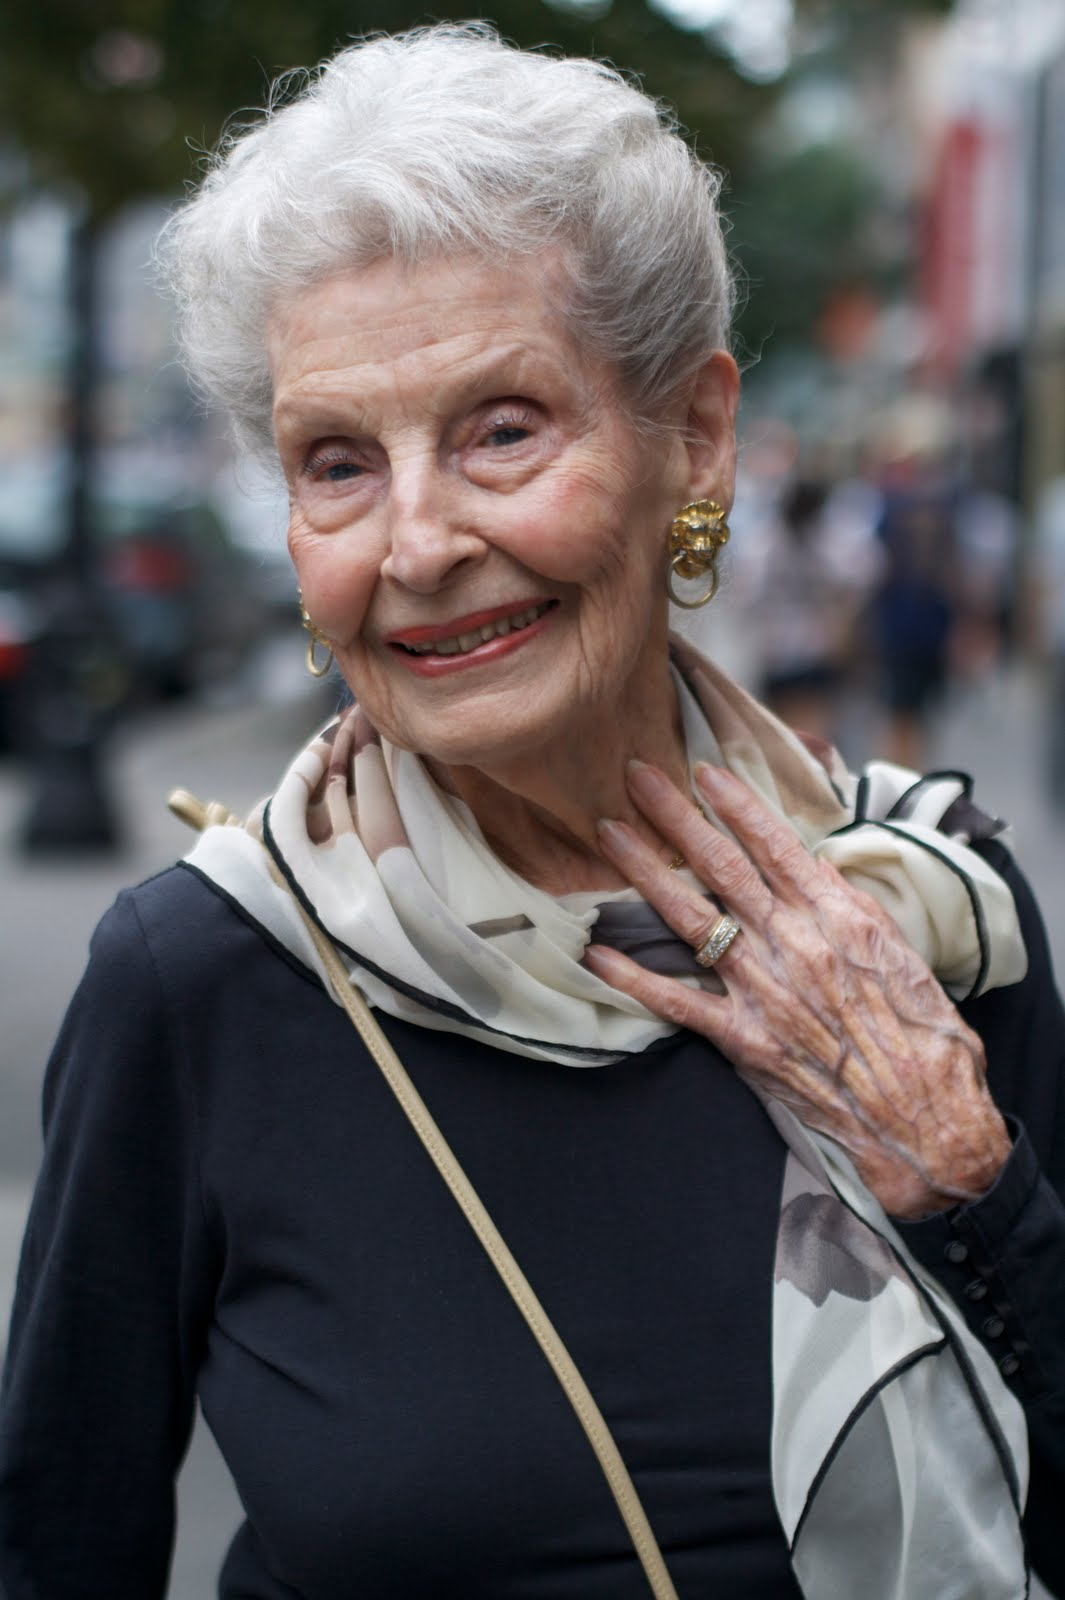 advanced style profile of a 100 year old lady - advanced style